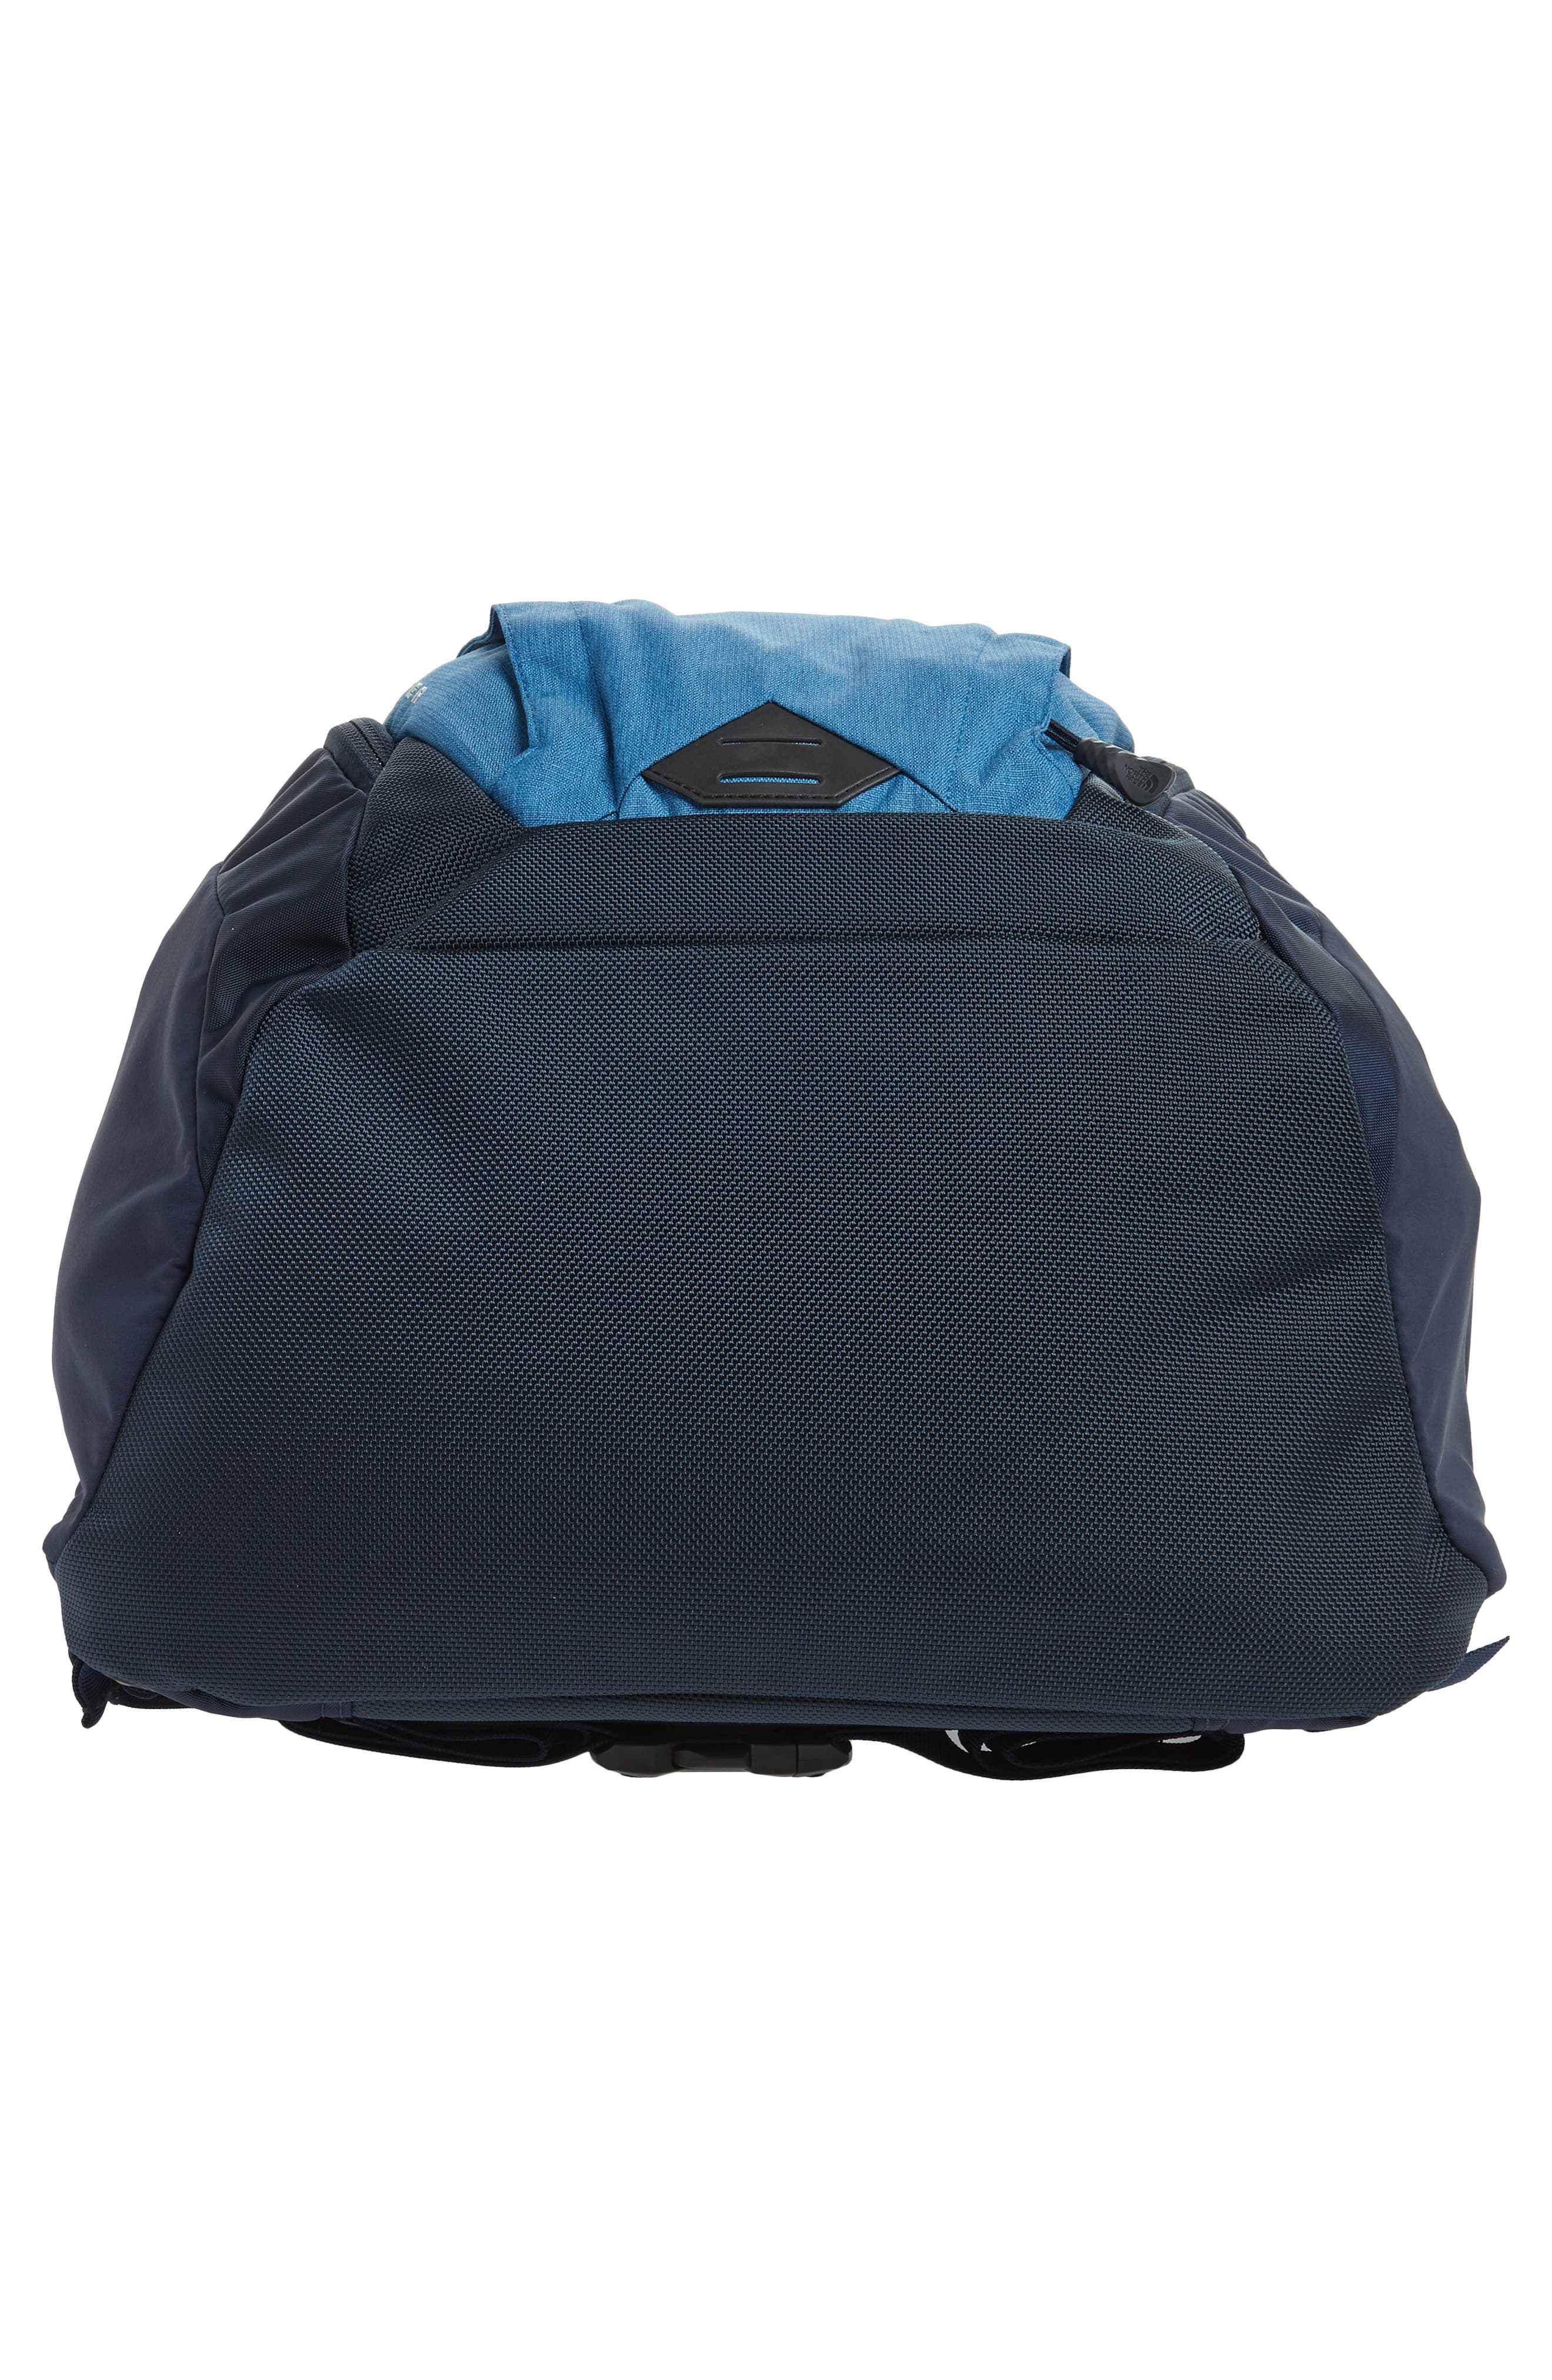 THE NORTH FACE,                             Router Backpack,                             Alternate thumbnail 6, color,                             DISH BLUE HEATHER/ URBAN NAVY